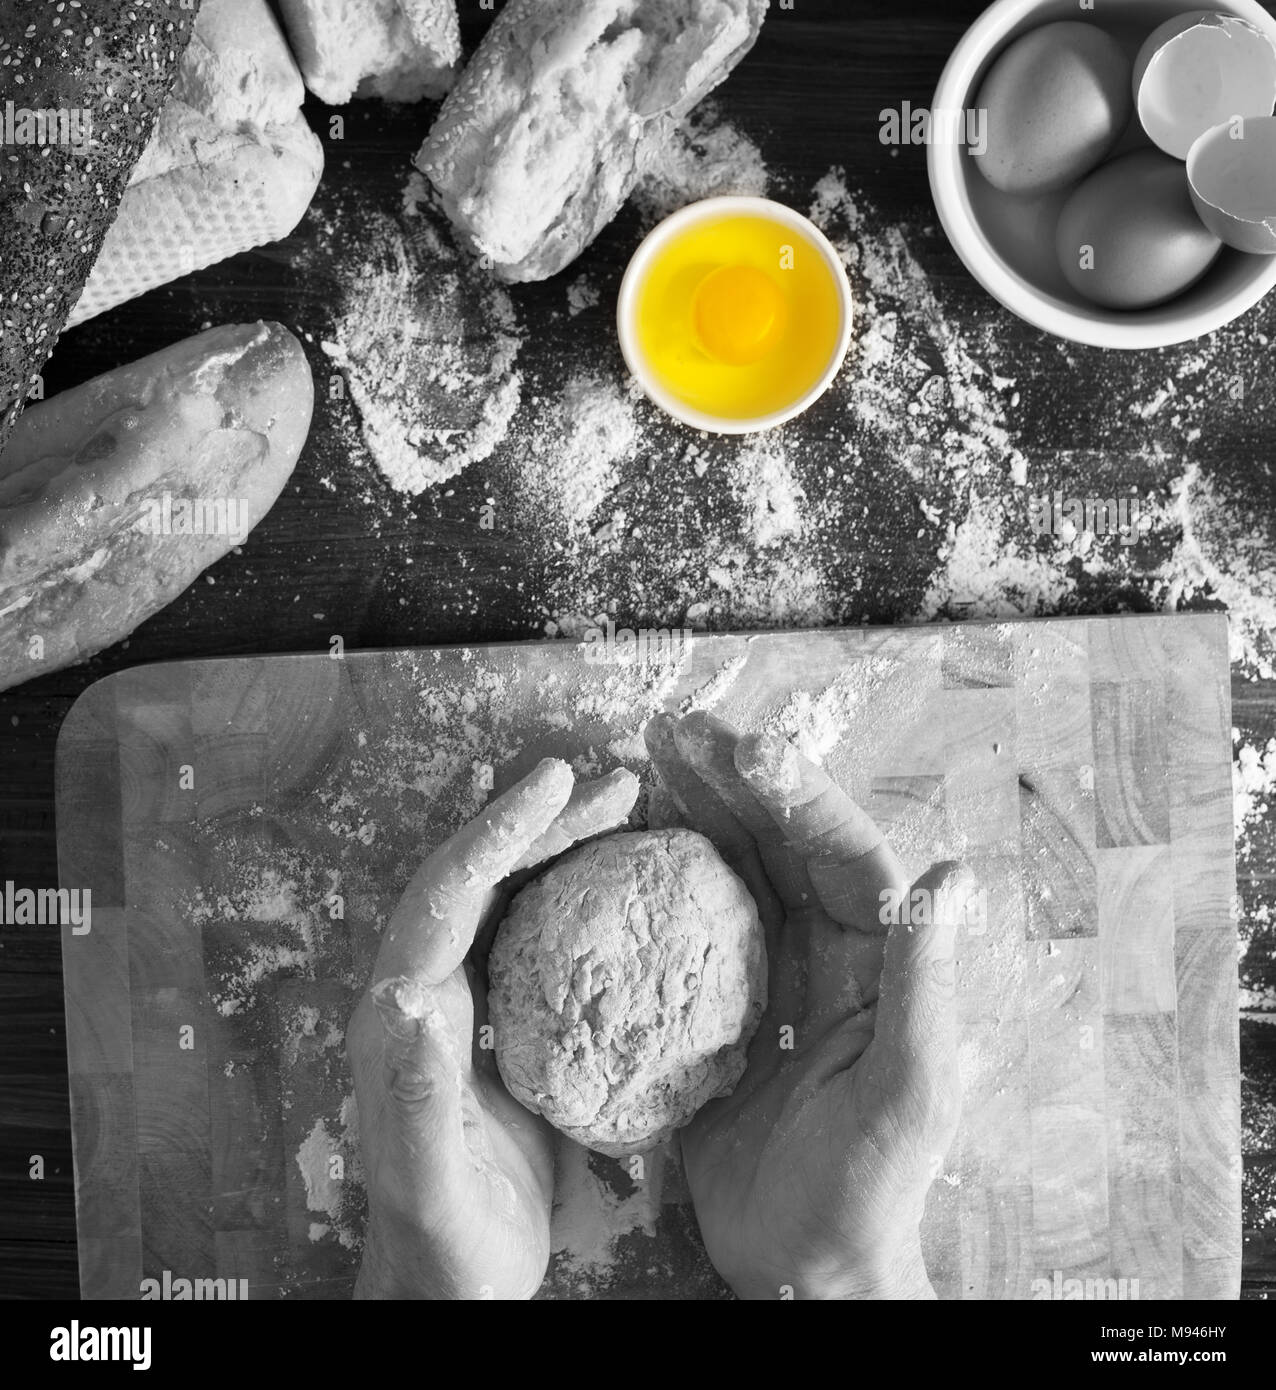 Black white shot with colour popping of egg image shows baker kneading organic dough